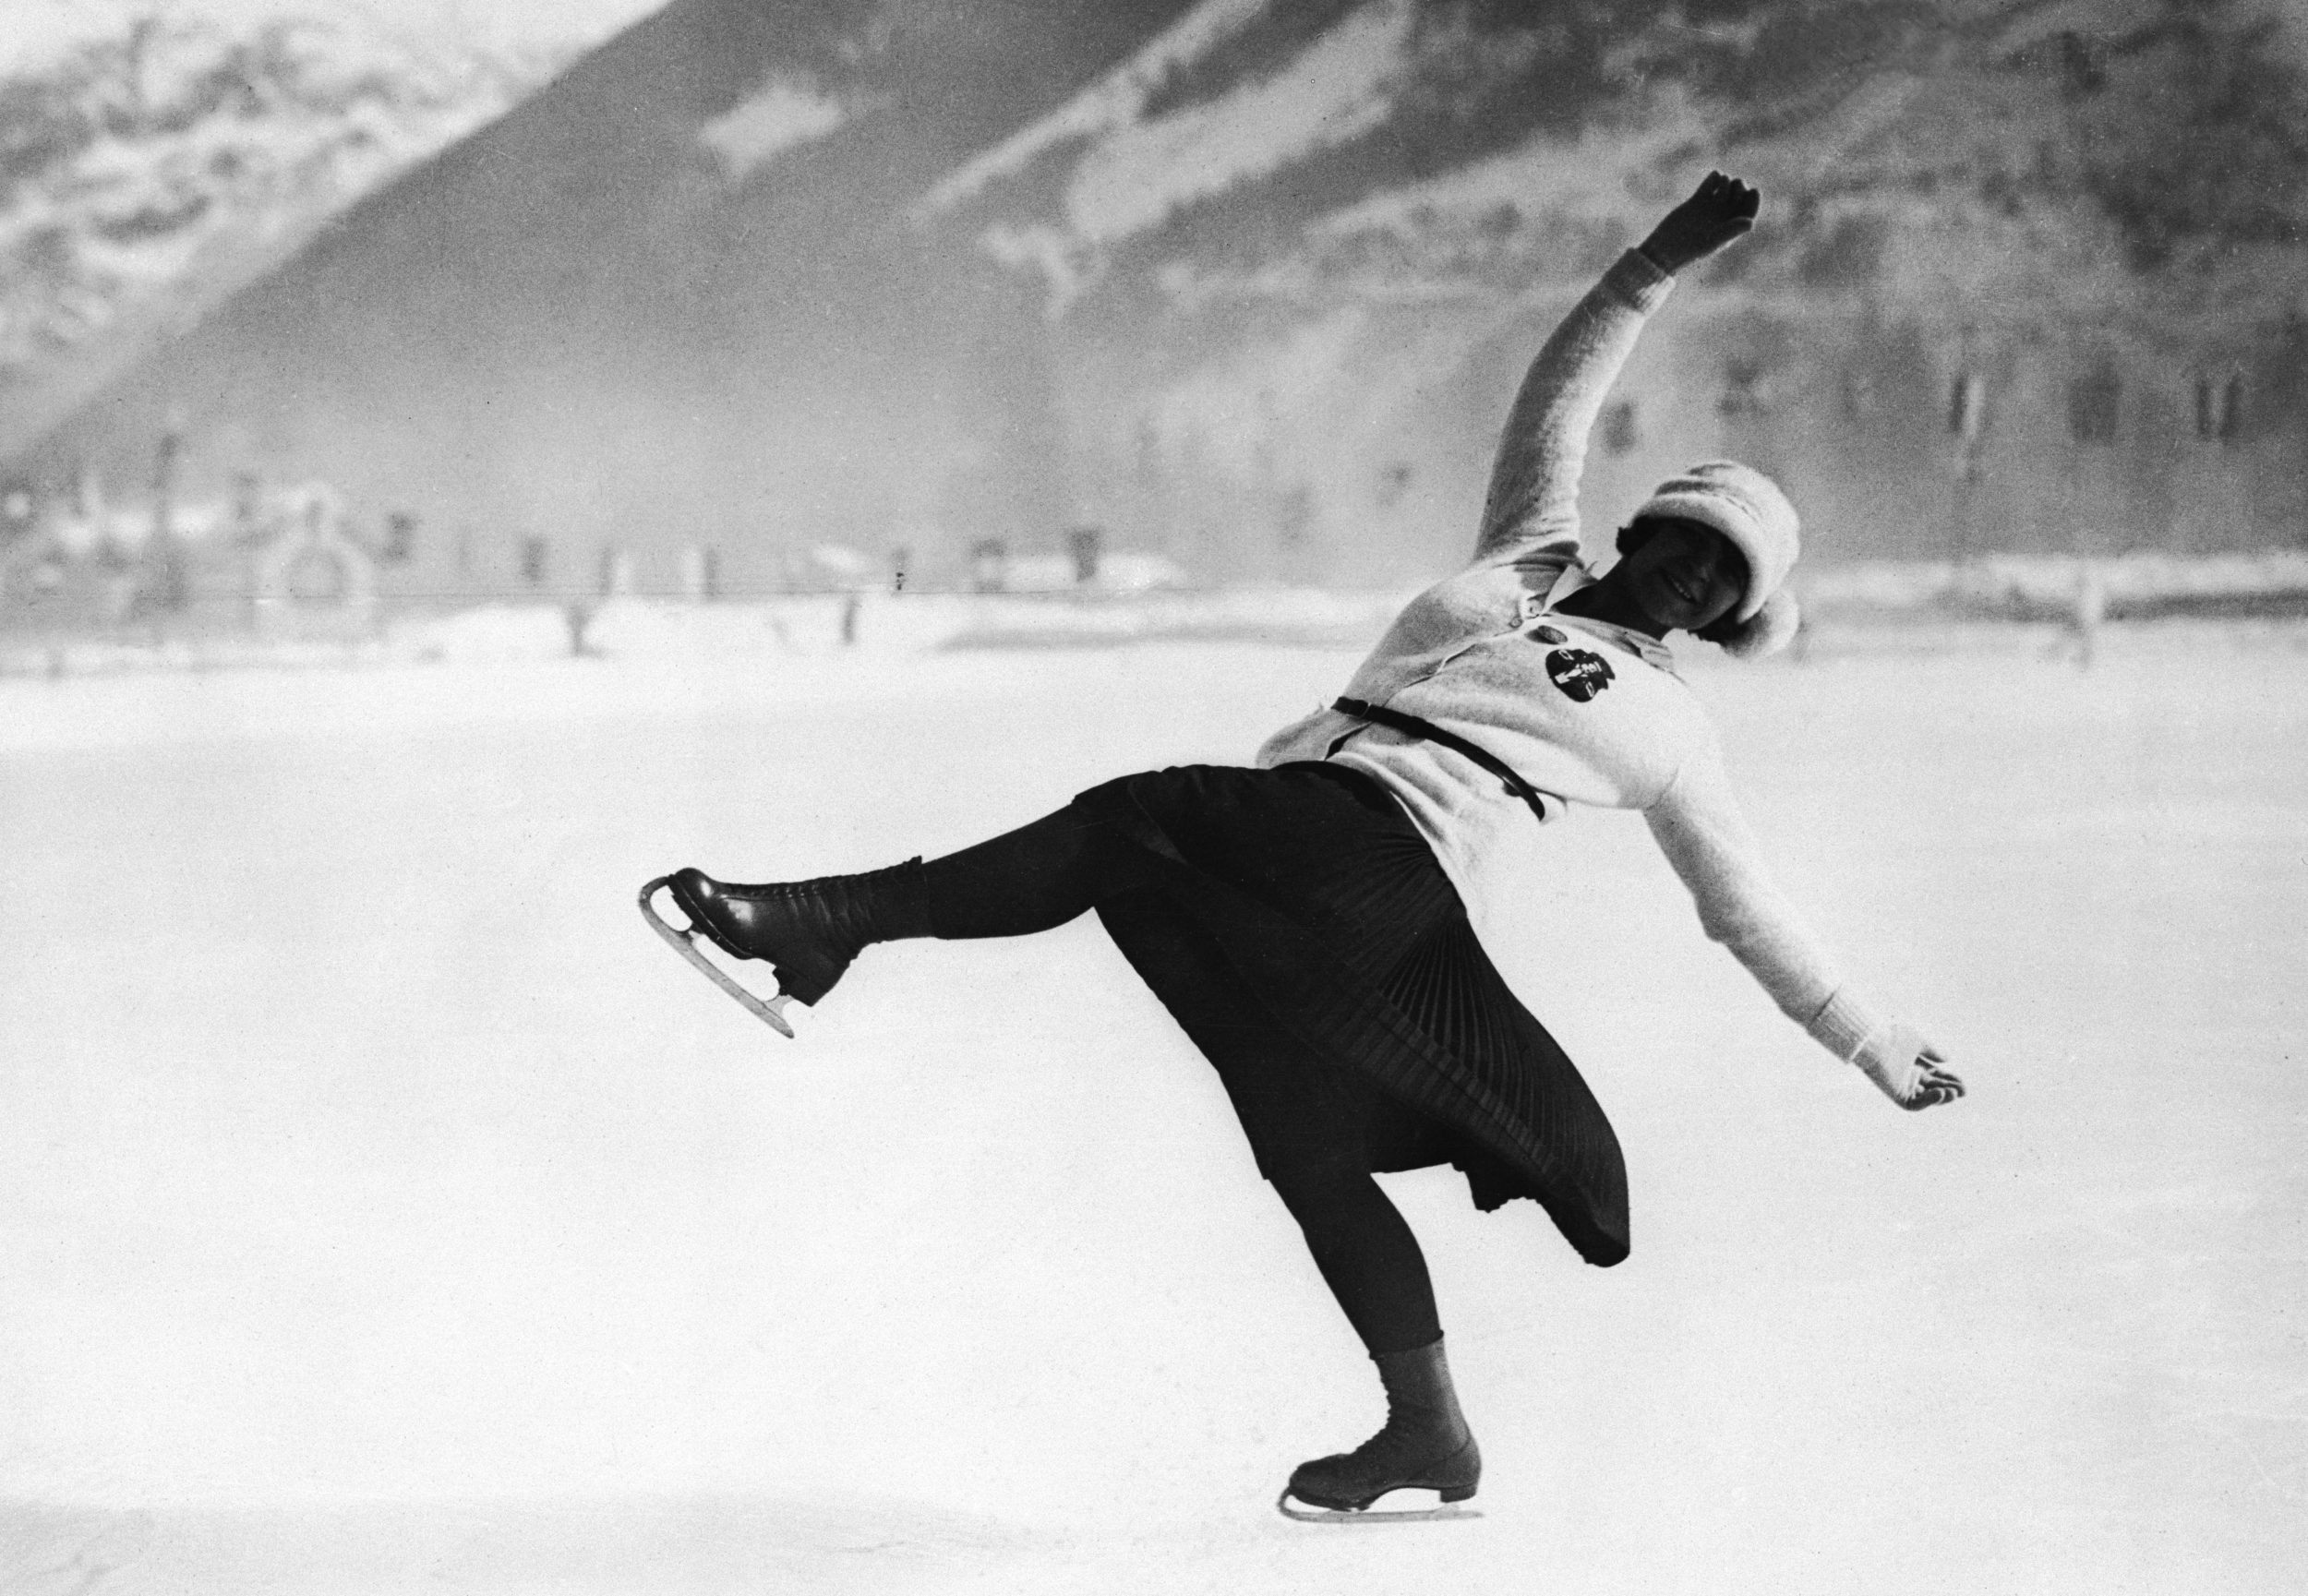 Herma Planck-Szabo of Austria on her way to winning the women's figure skating gold medal at the first Winter Olympics, 1924 (Photo by Topical Press Agency/Getty Images)